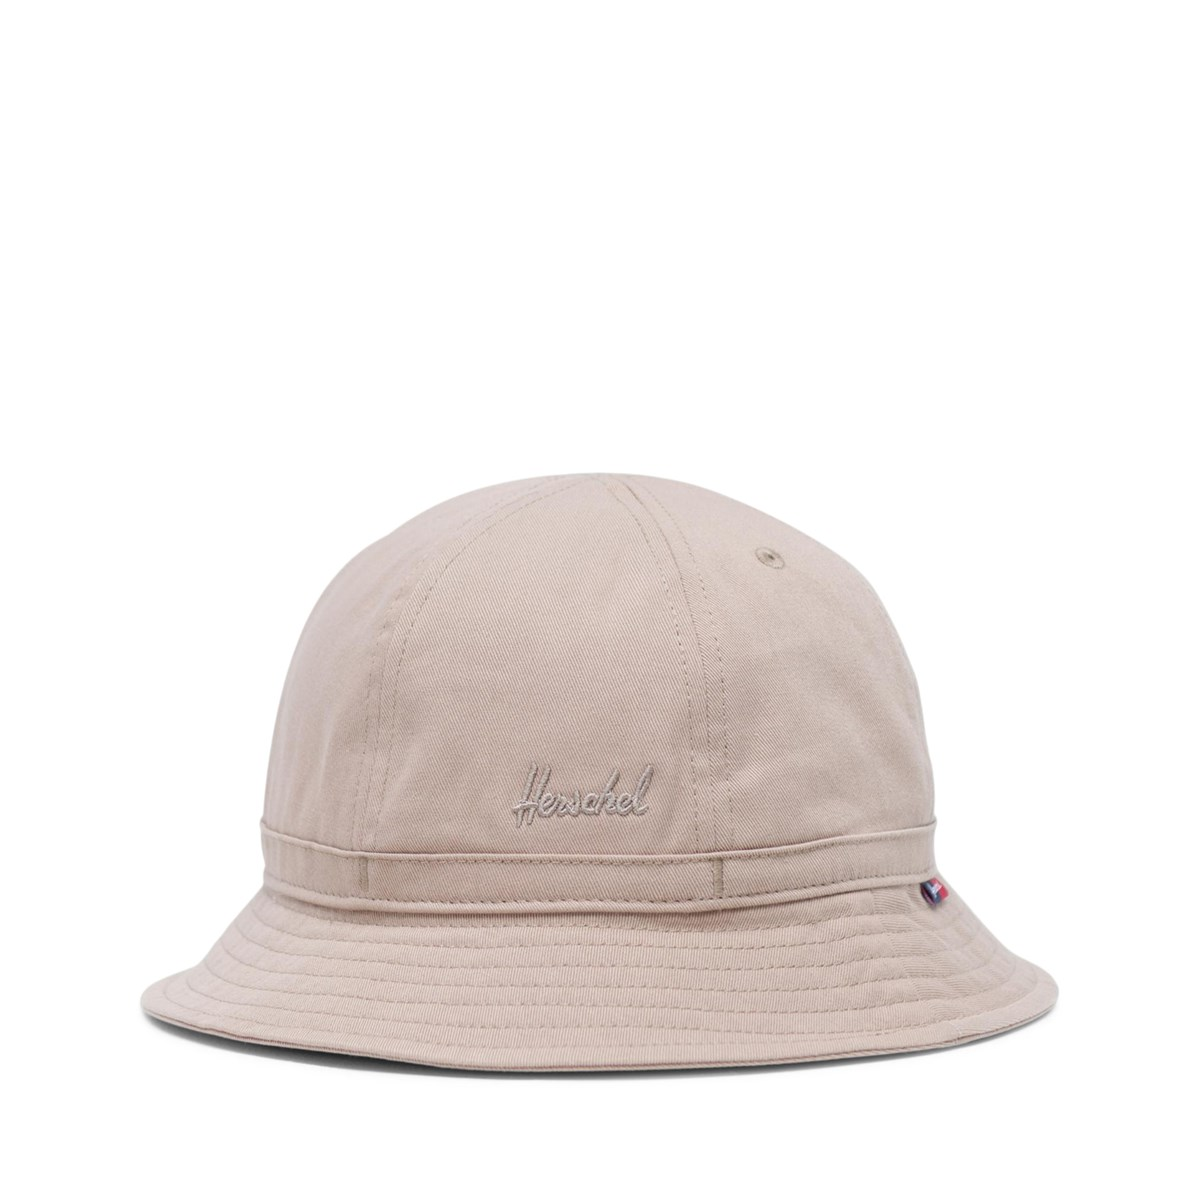 Cooperman Bucket Hat in Khaki